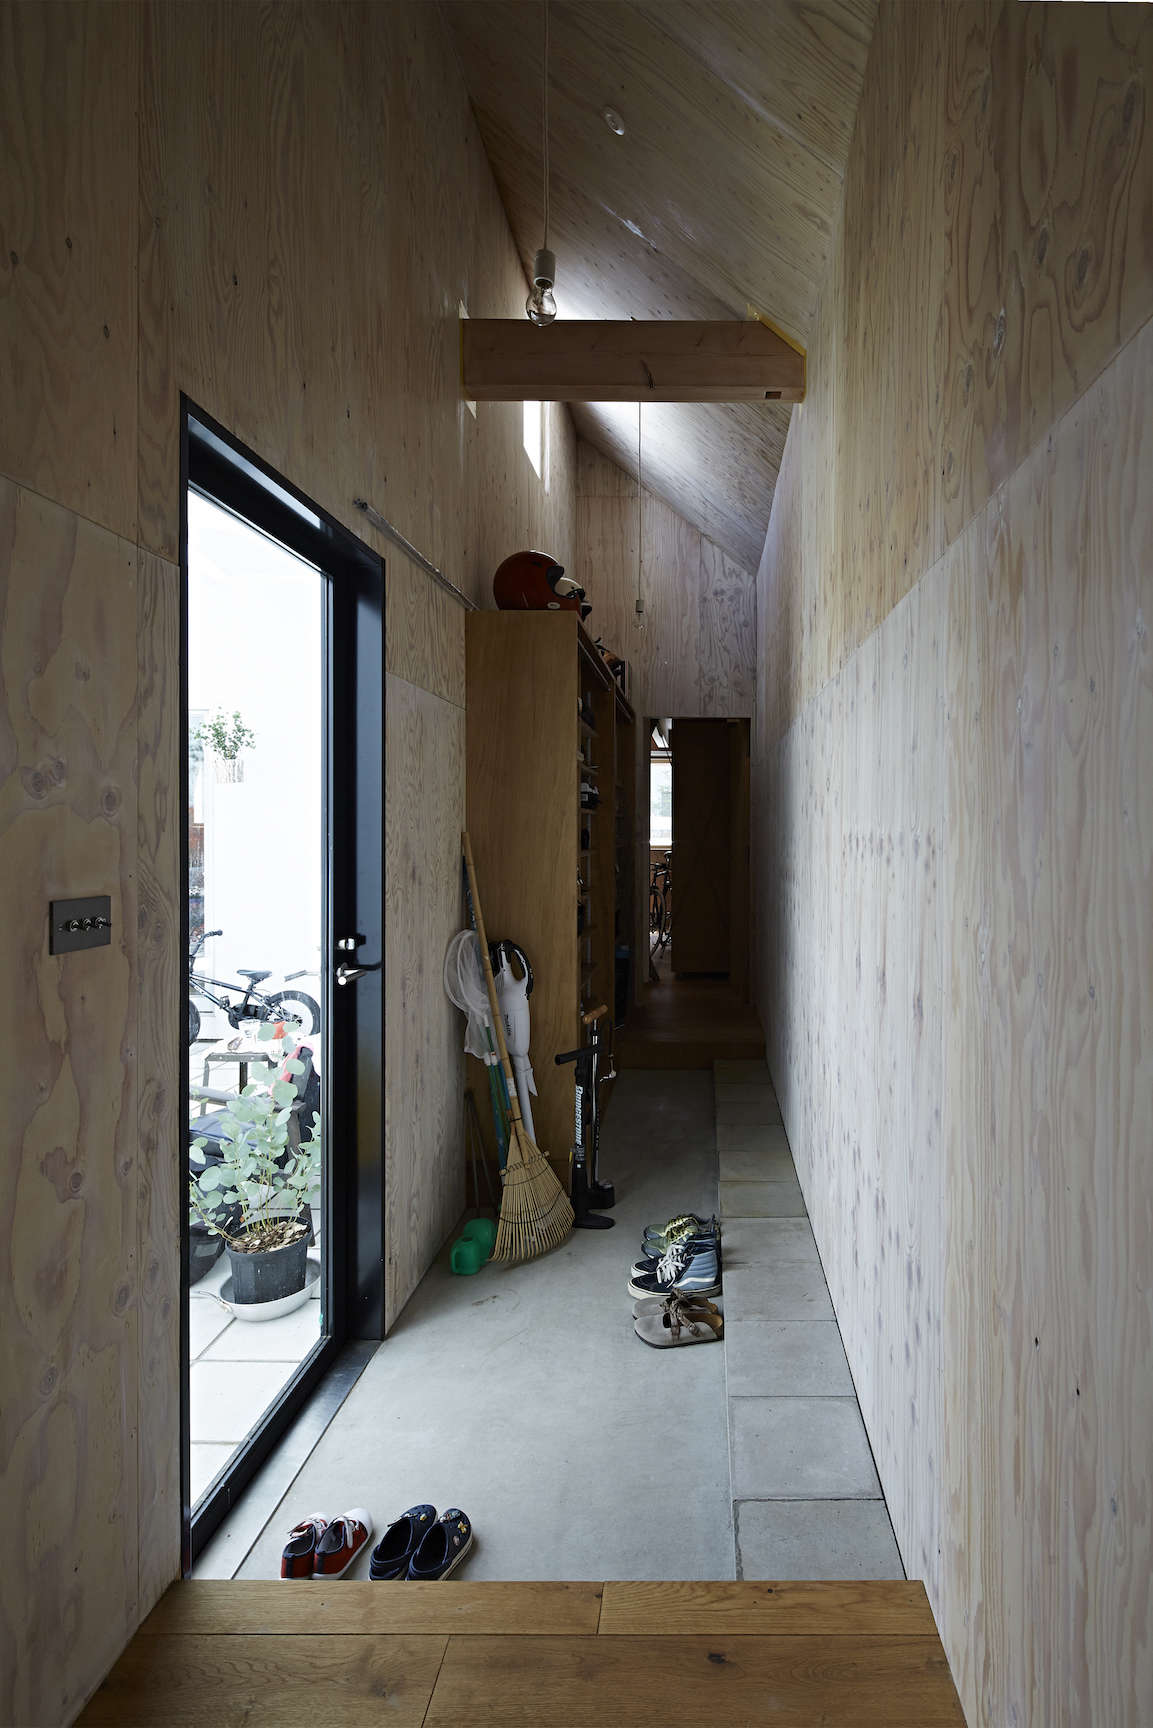 plywood lined entry hall at sabi, a surfers' house in chiba, japan, designed by 17